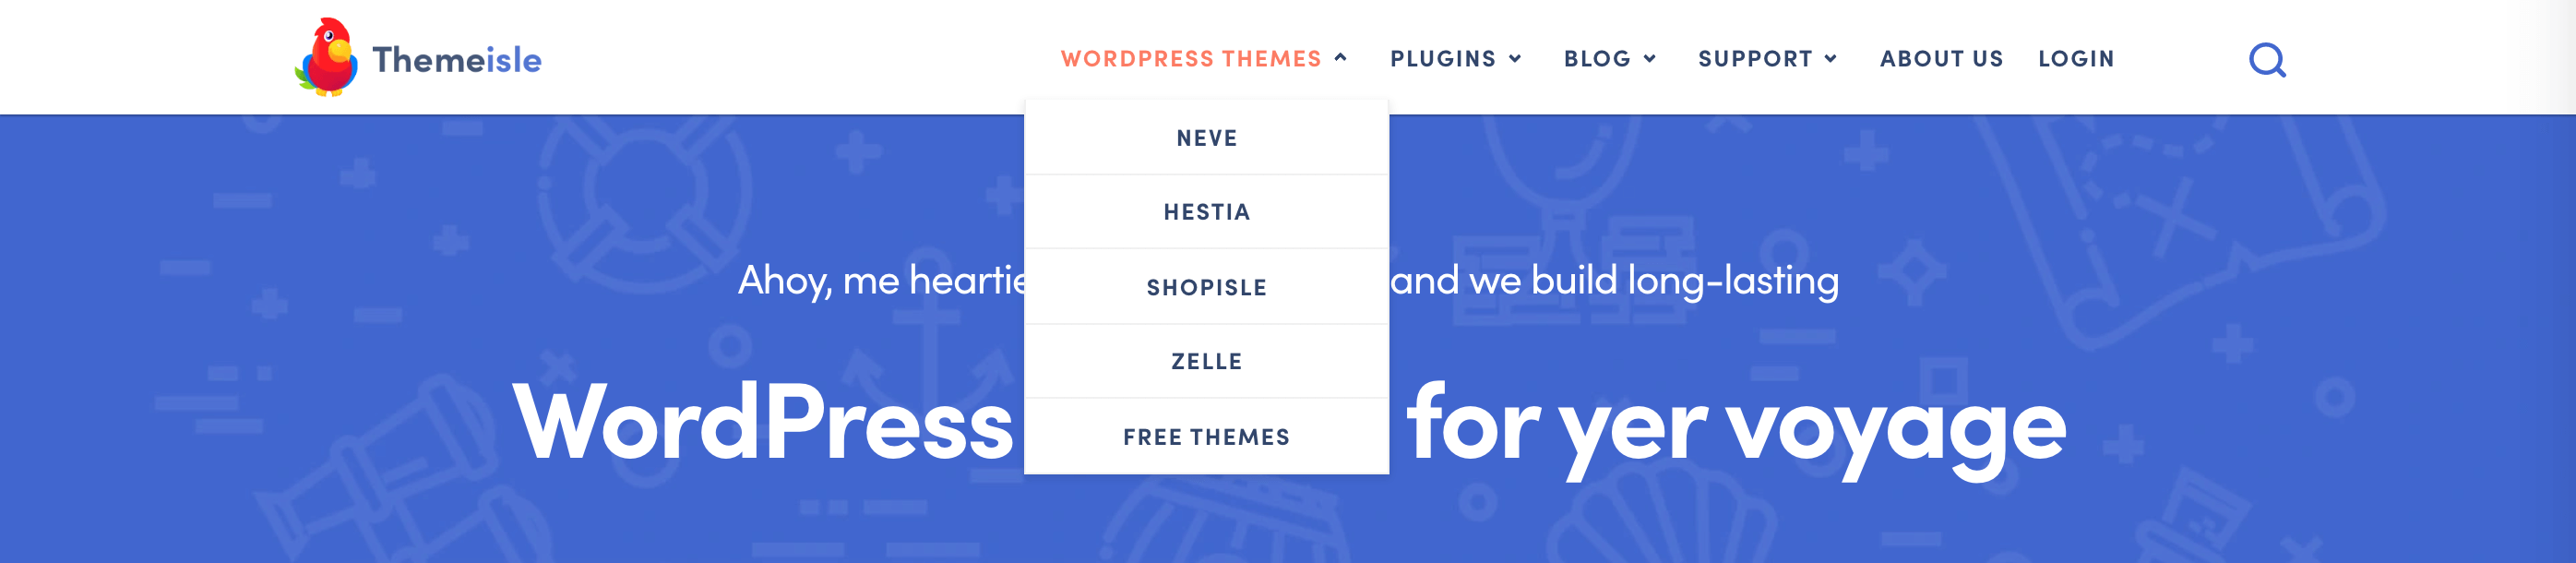 Le menu de navigation ThemeIsle.